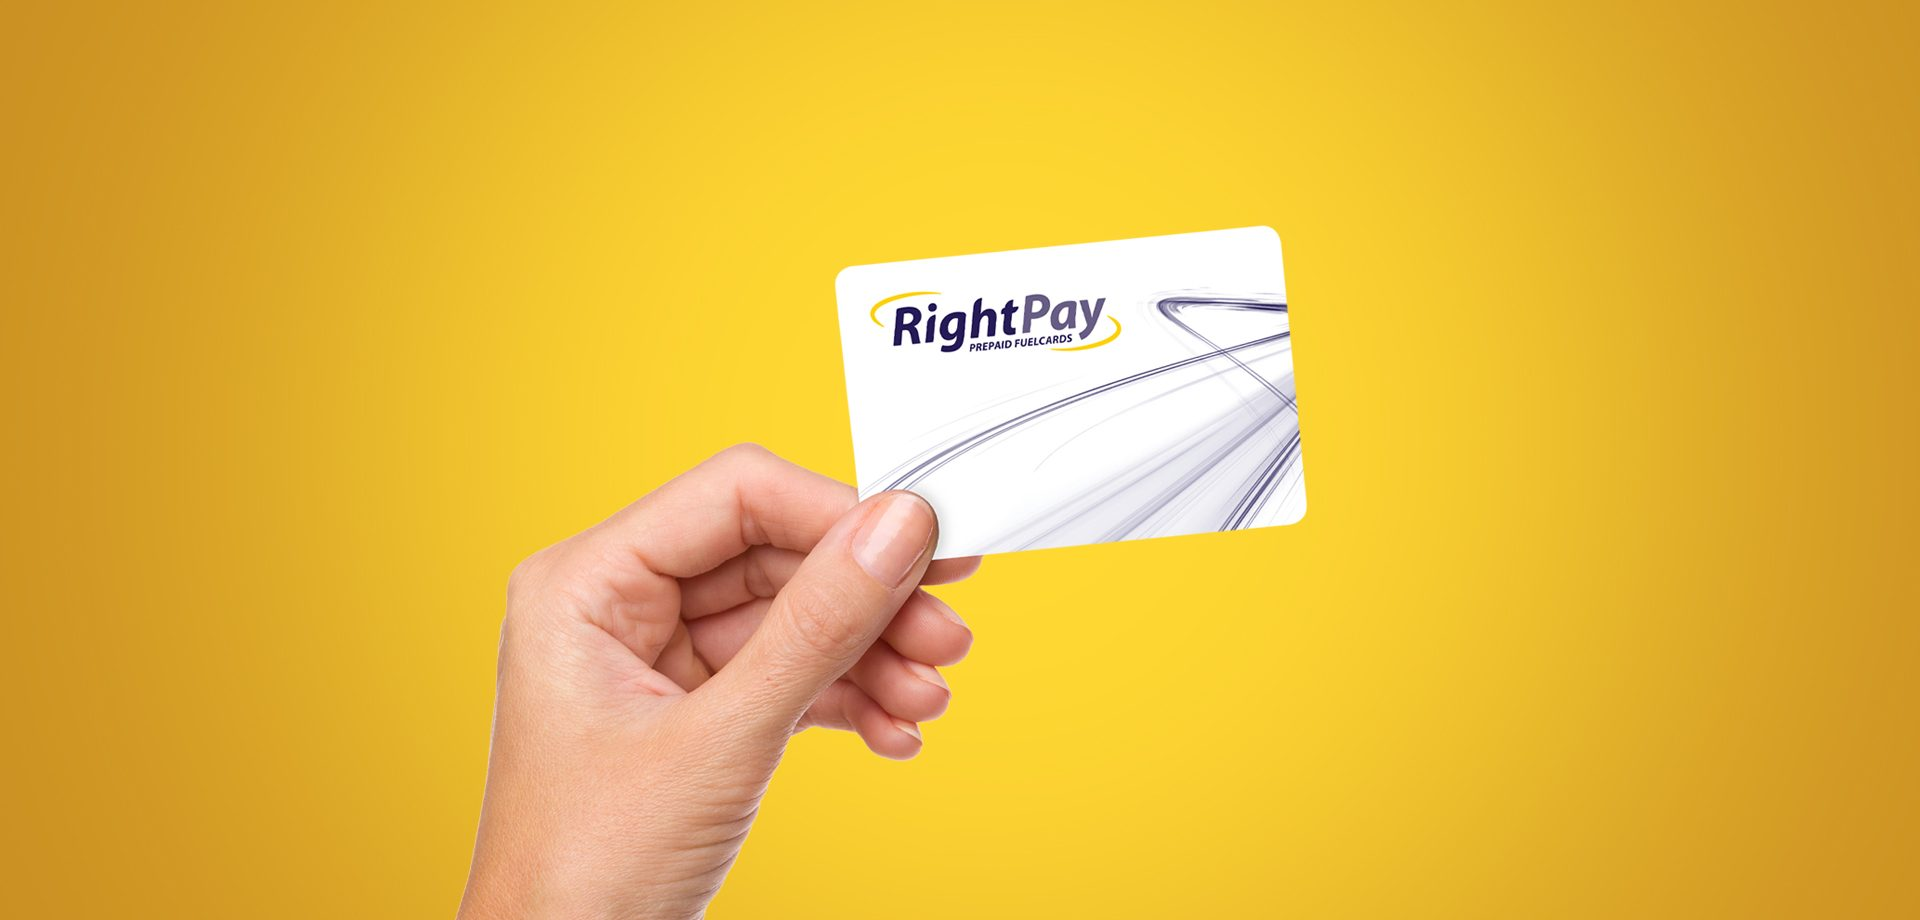 RightPay_CardHand